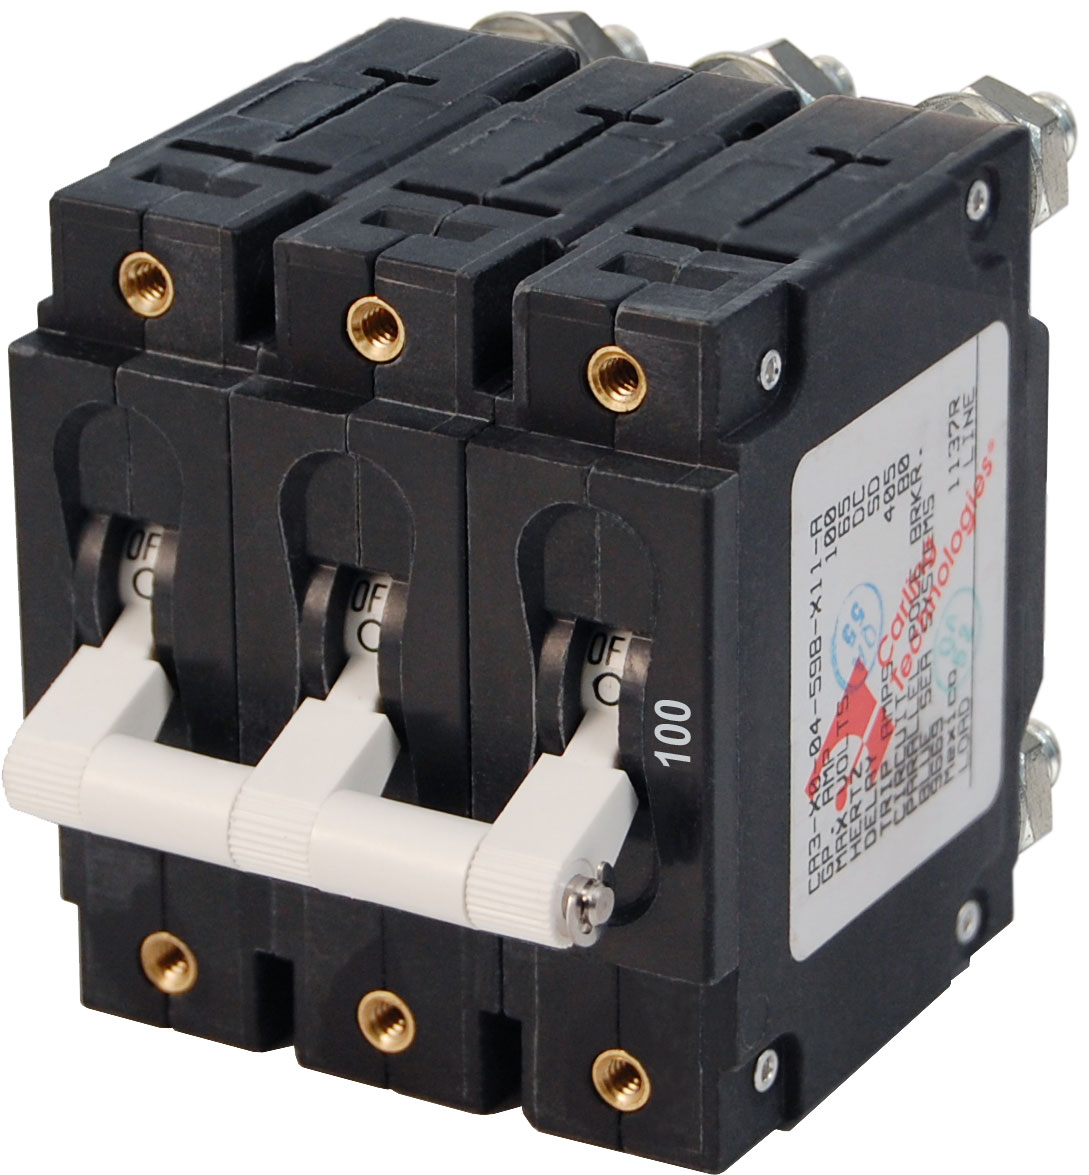 C-Series White Toggle Circuit Breaker - Triple Pole 100 Amp - Blue ...